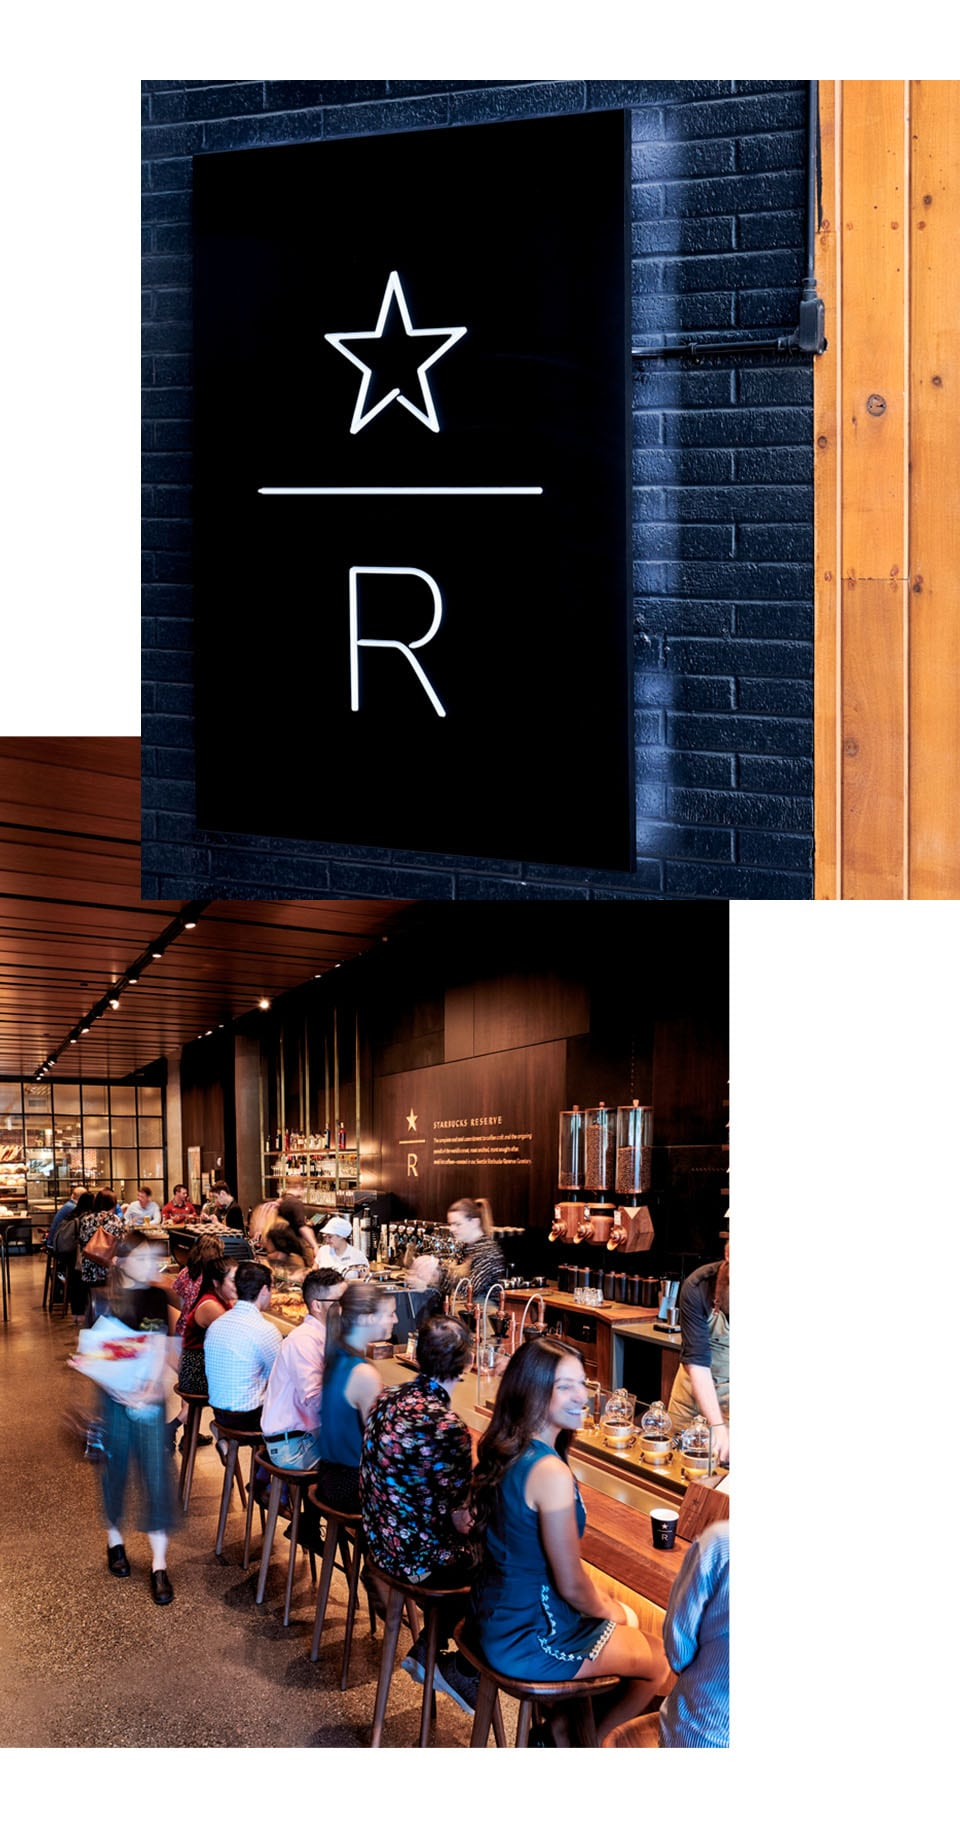 Collage with closeup image of Starbucks Reserve logo on a tiled wall and a dozen people sitting at a counter in an interior space